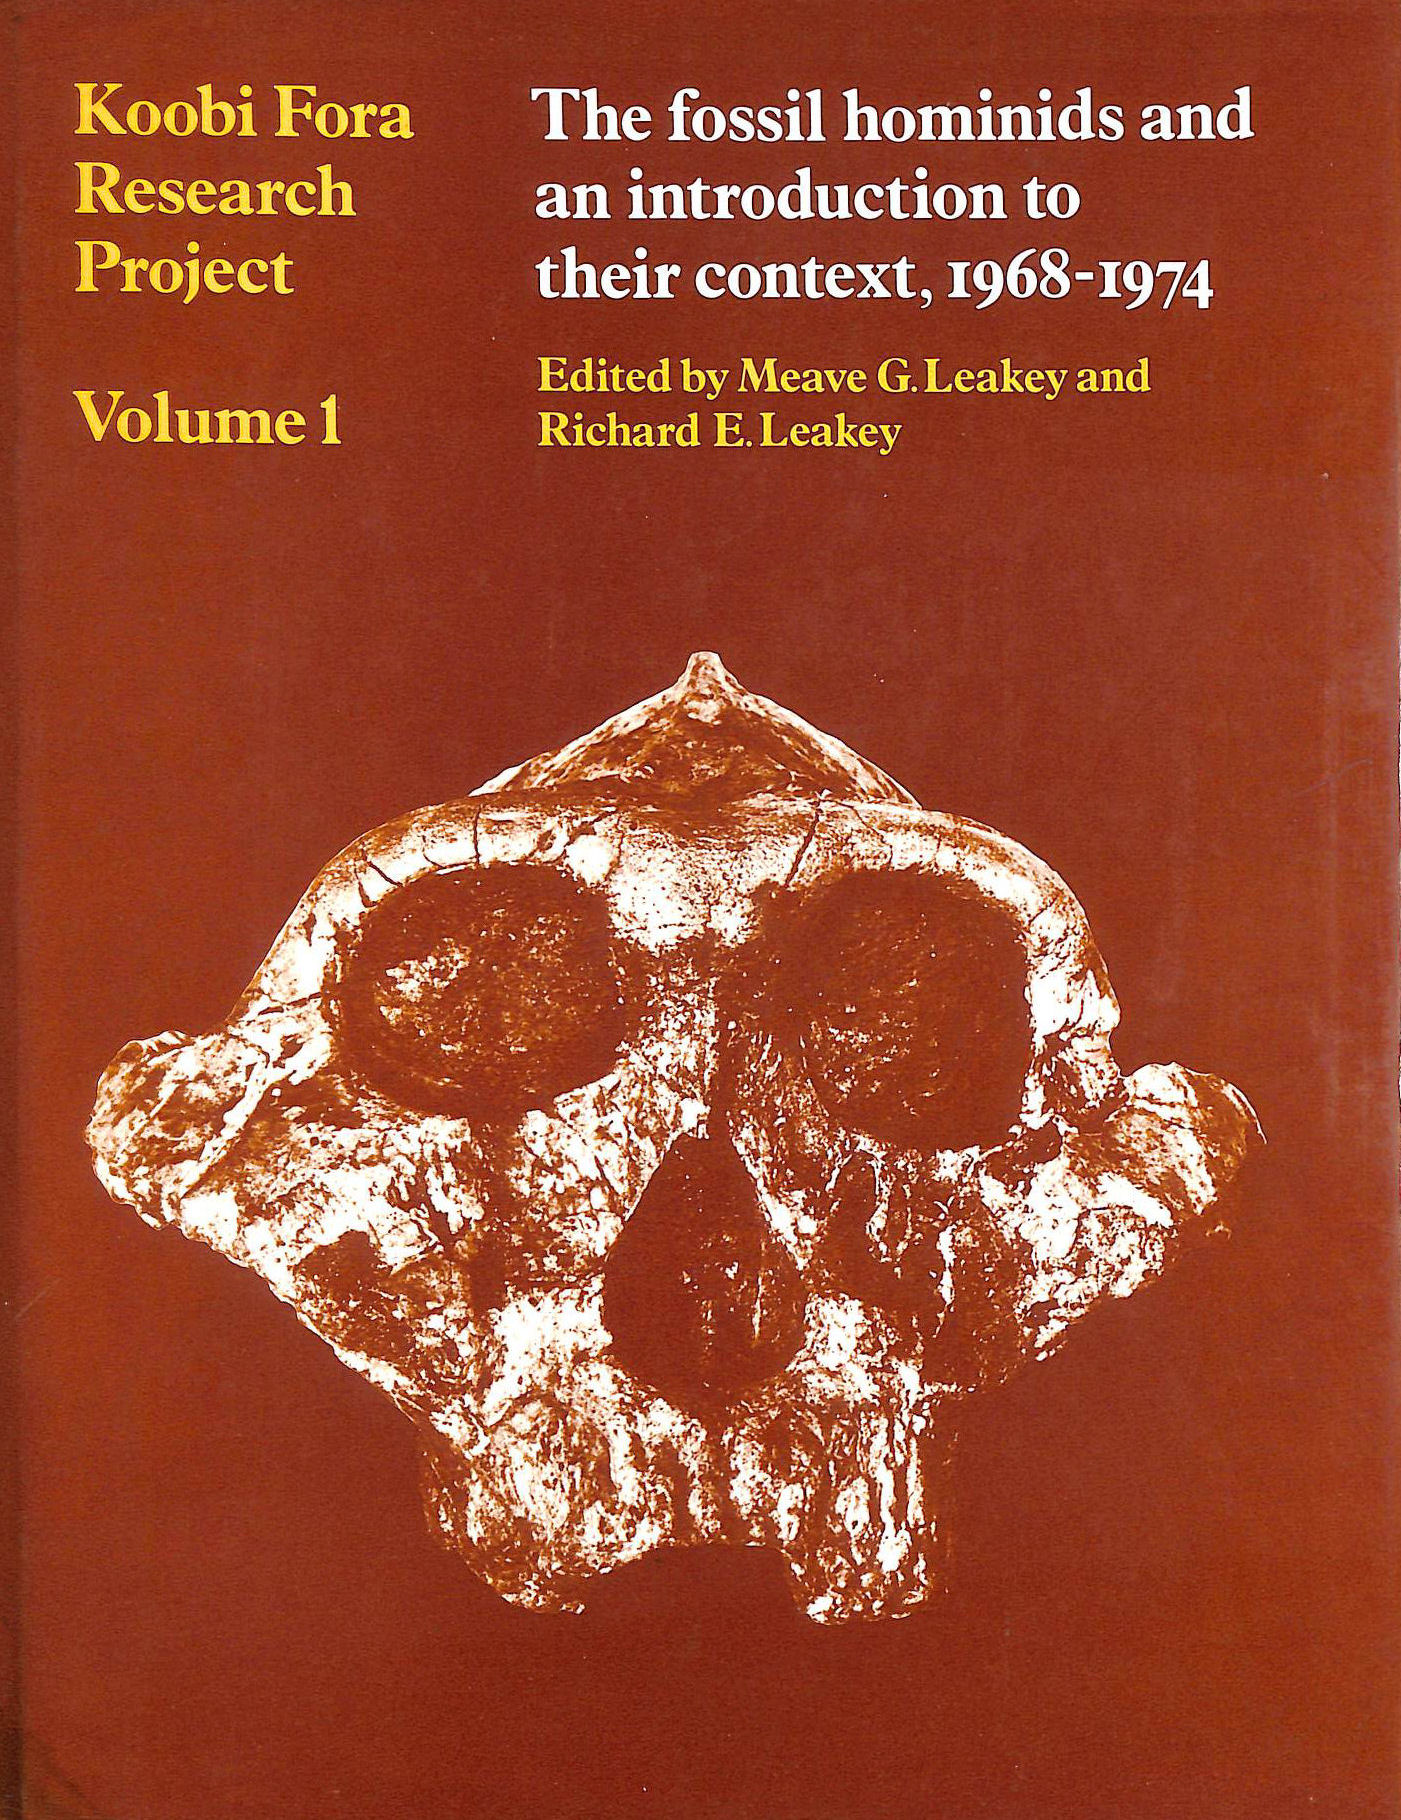 Image for Koobi Fora Research Project: The Fossil Hominids and an Introduction to Their Context, 1968-74 v.1